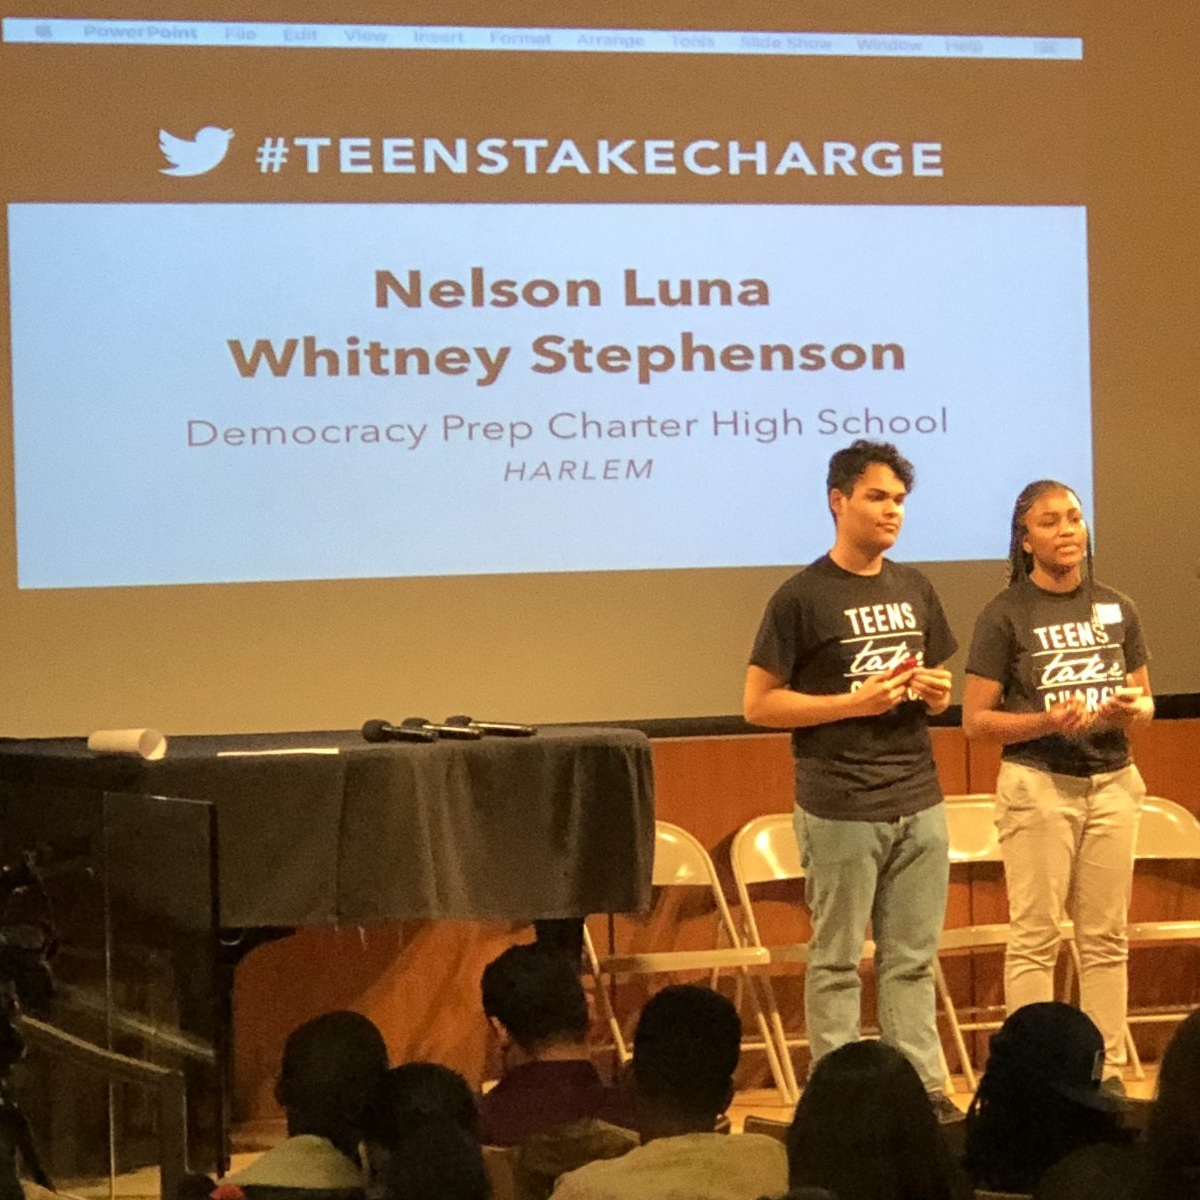 New York City Students Share Plan to Fight for School Integration   Long Island Report, April 23, 2018